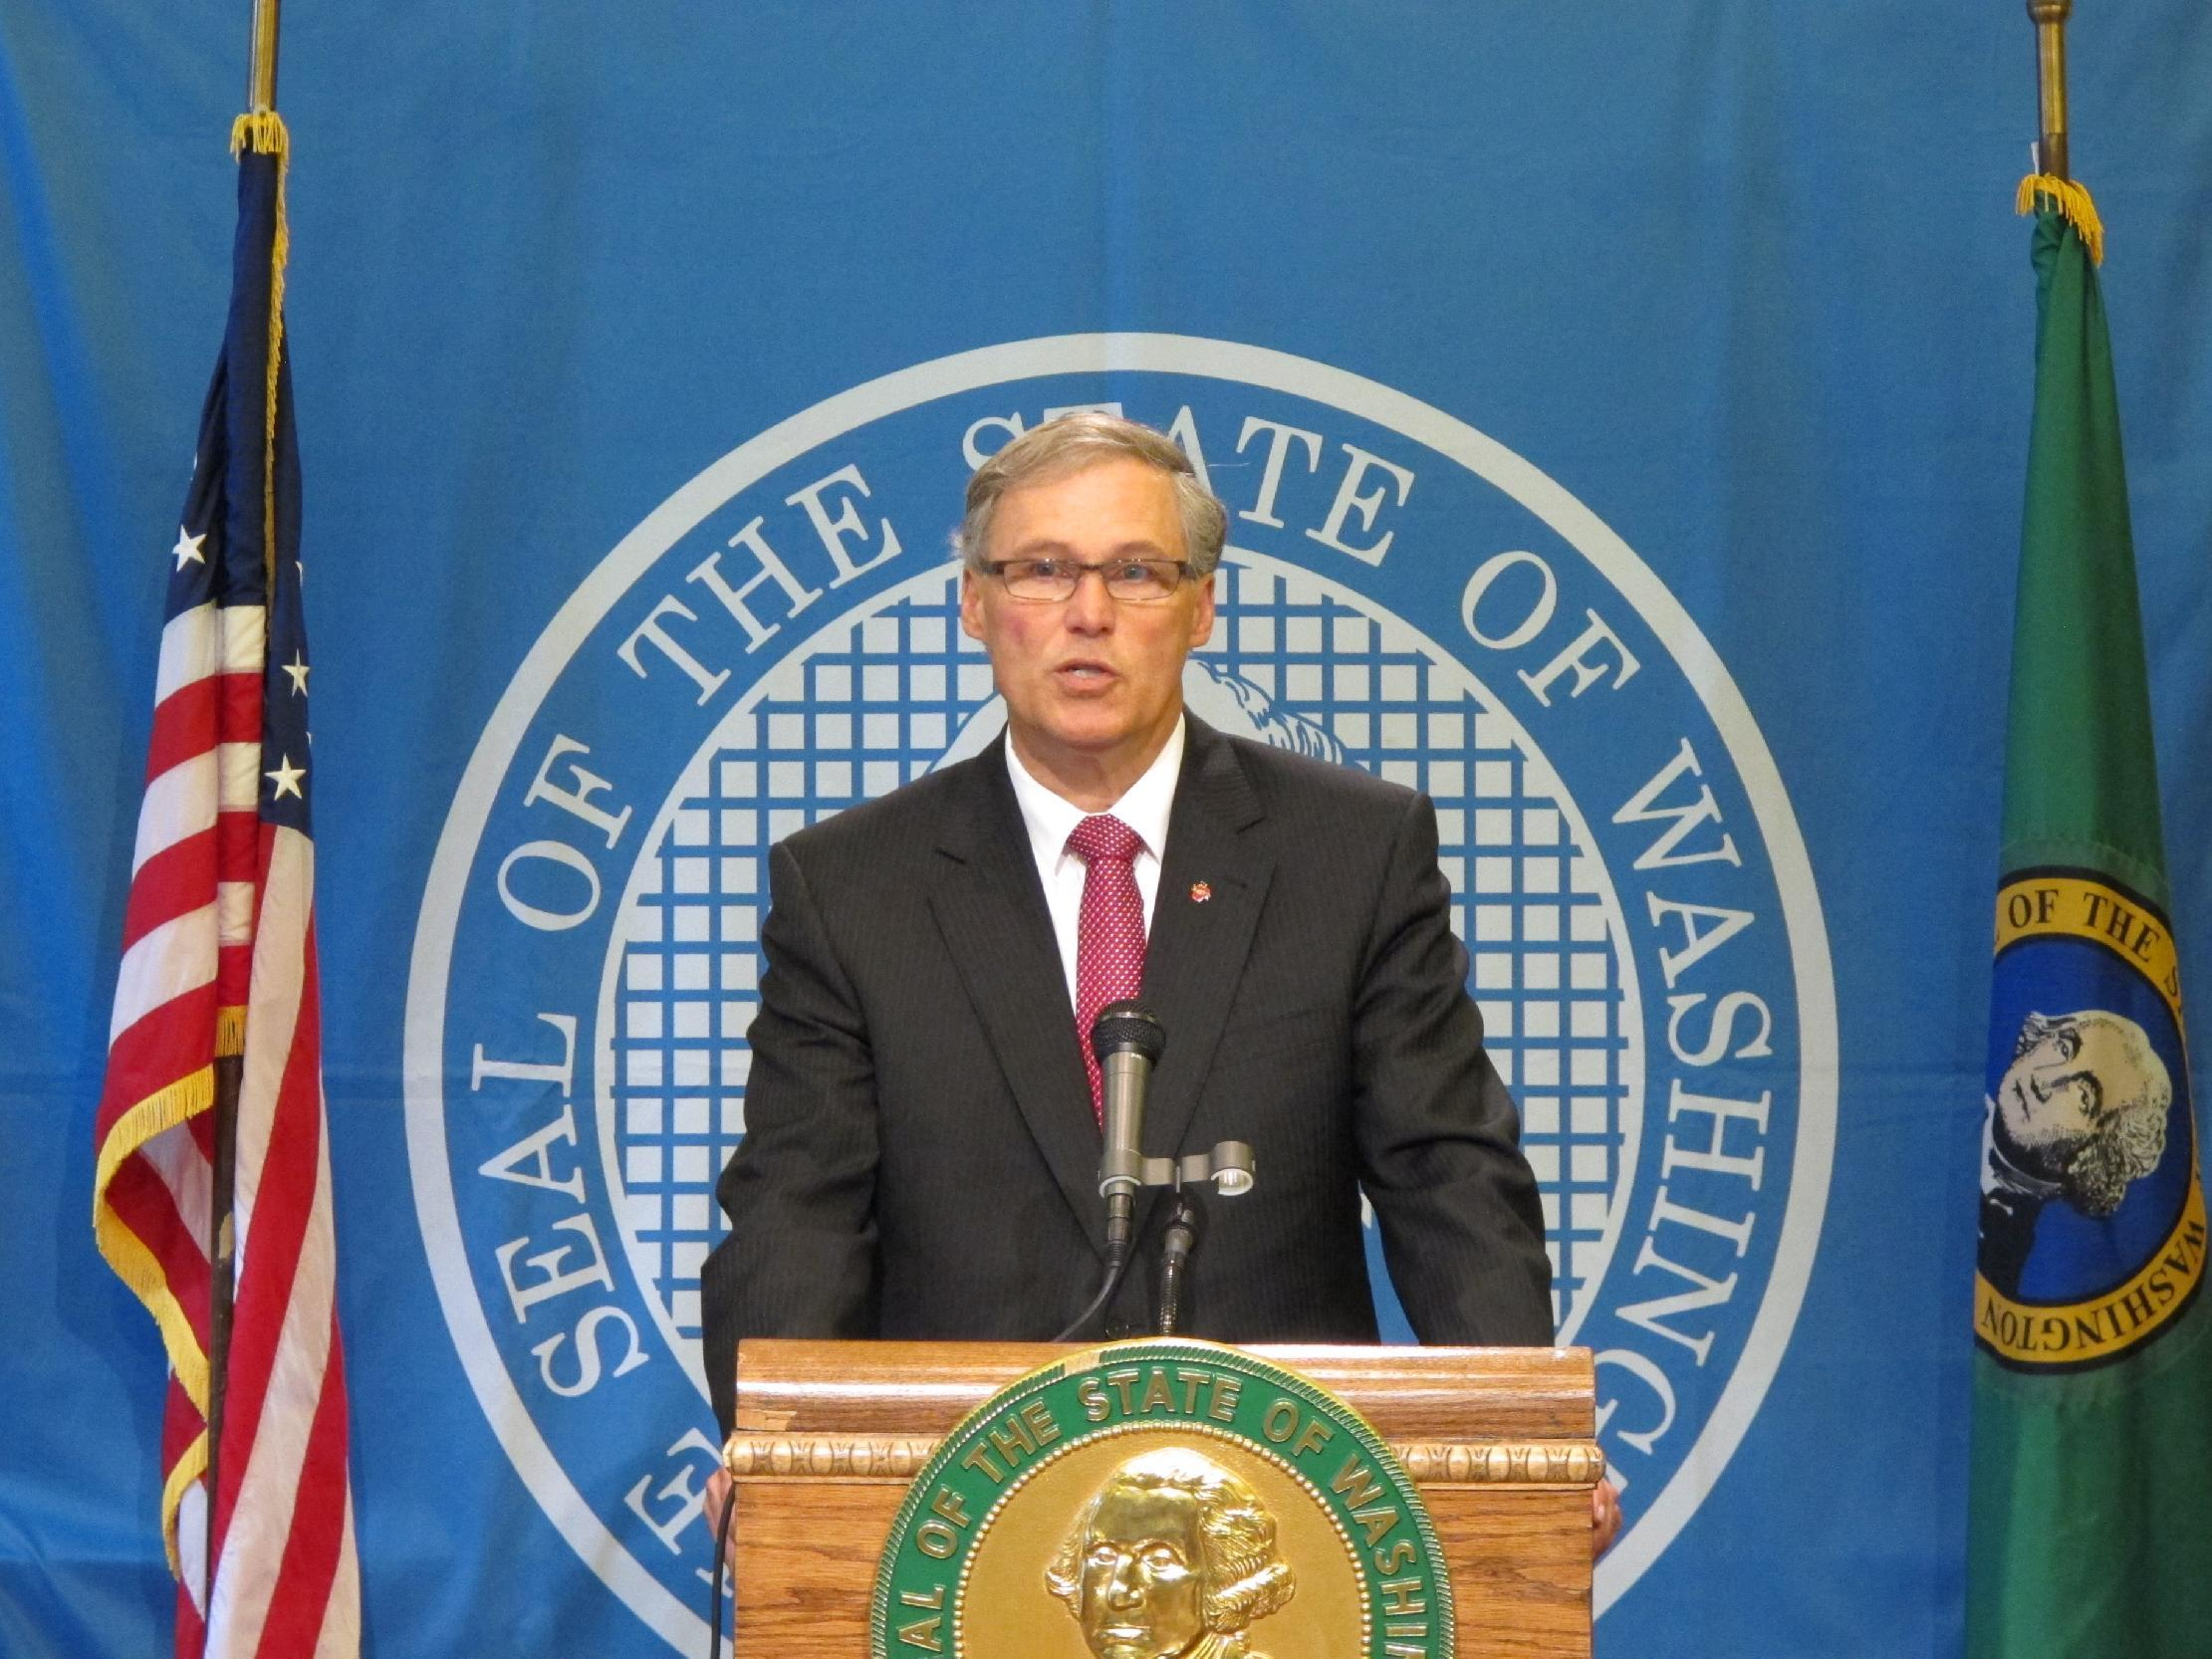 Washington state Gov. Jay Inslee answers questions about a potential leak in a tank at Hanford Nuclear Reservation, on Friday, June 21, 2013, in Olympia, Wash. Officials with the U.S. Energy Department have notified the state that an underground tank holding some of the worst radioactive waste at the nation's most contaminated nuclear site might be leaking into the soil. (AP Photo/Rachel La Corte)